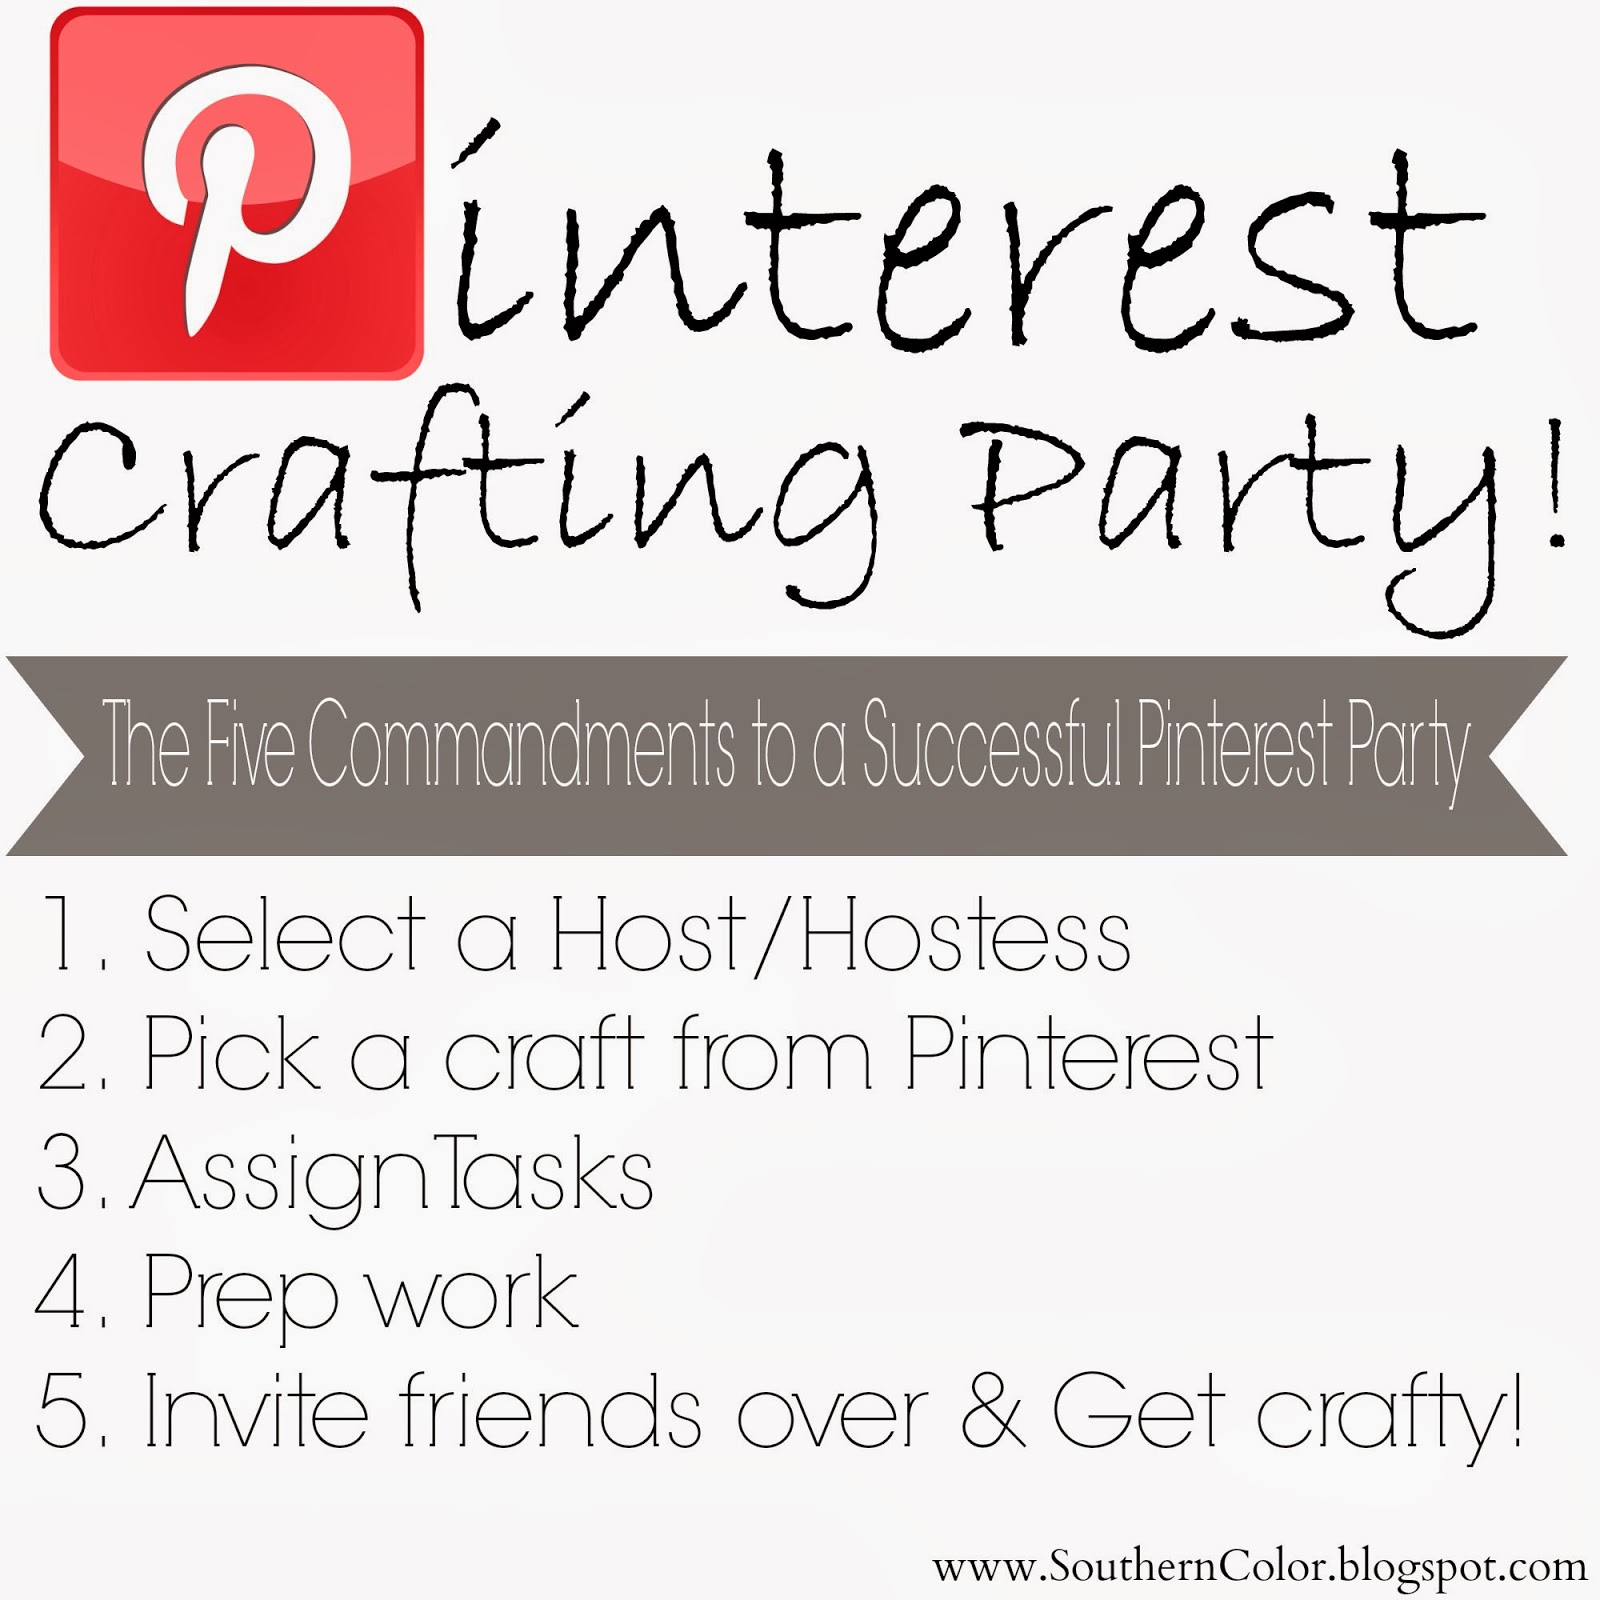 Southern Color How To Throw A Successful Pinterest Party